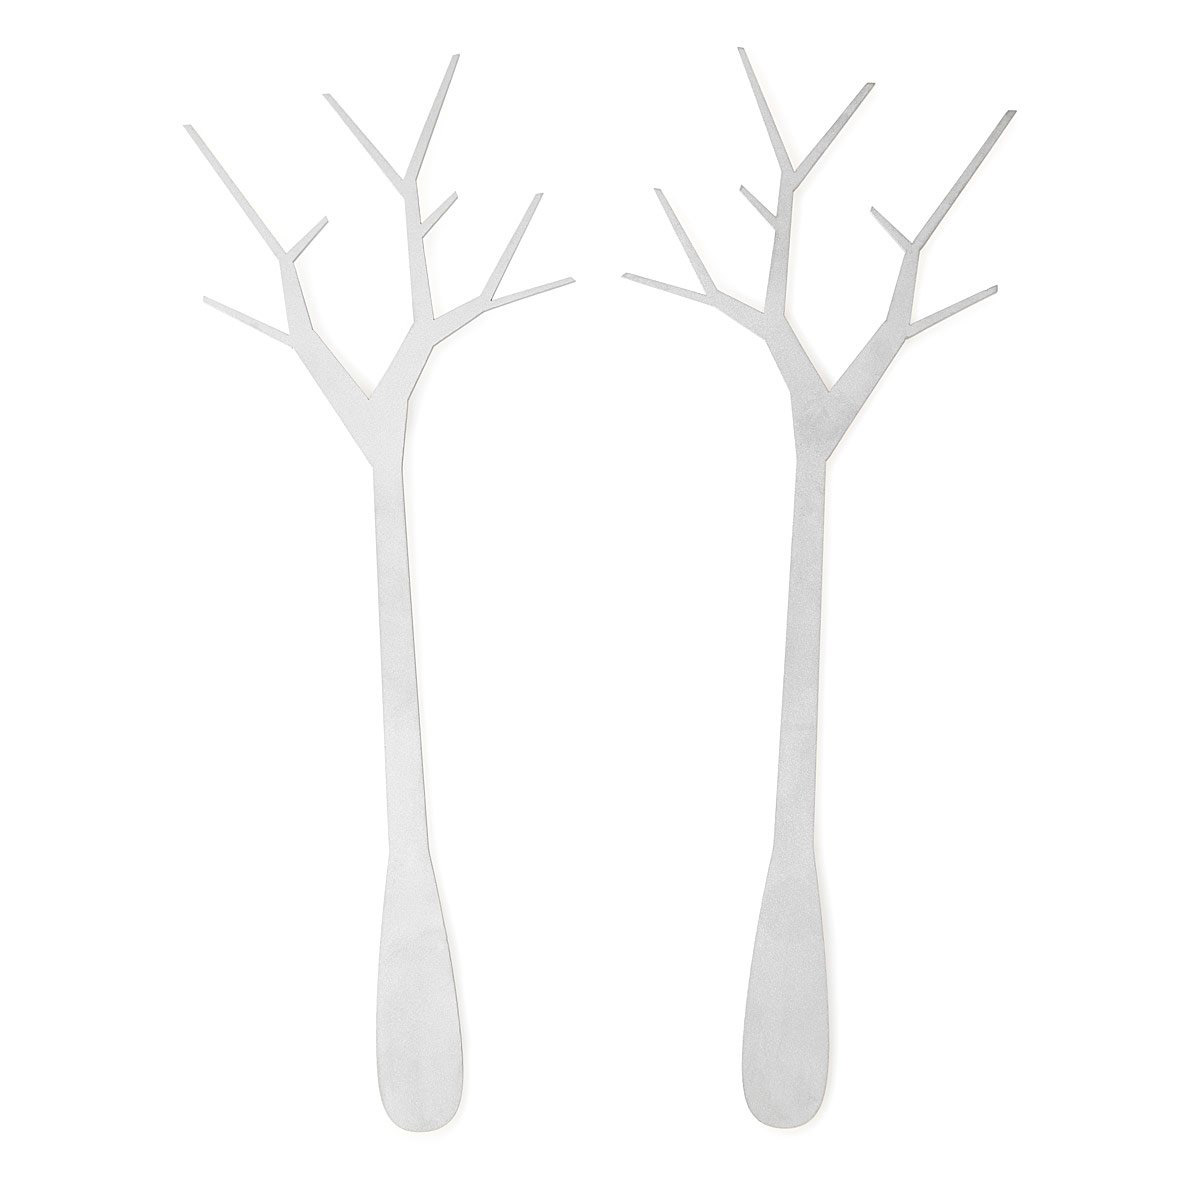 Stainless Steel Garnish Branches - Create Epic Bloody Marys and ...